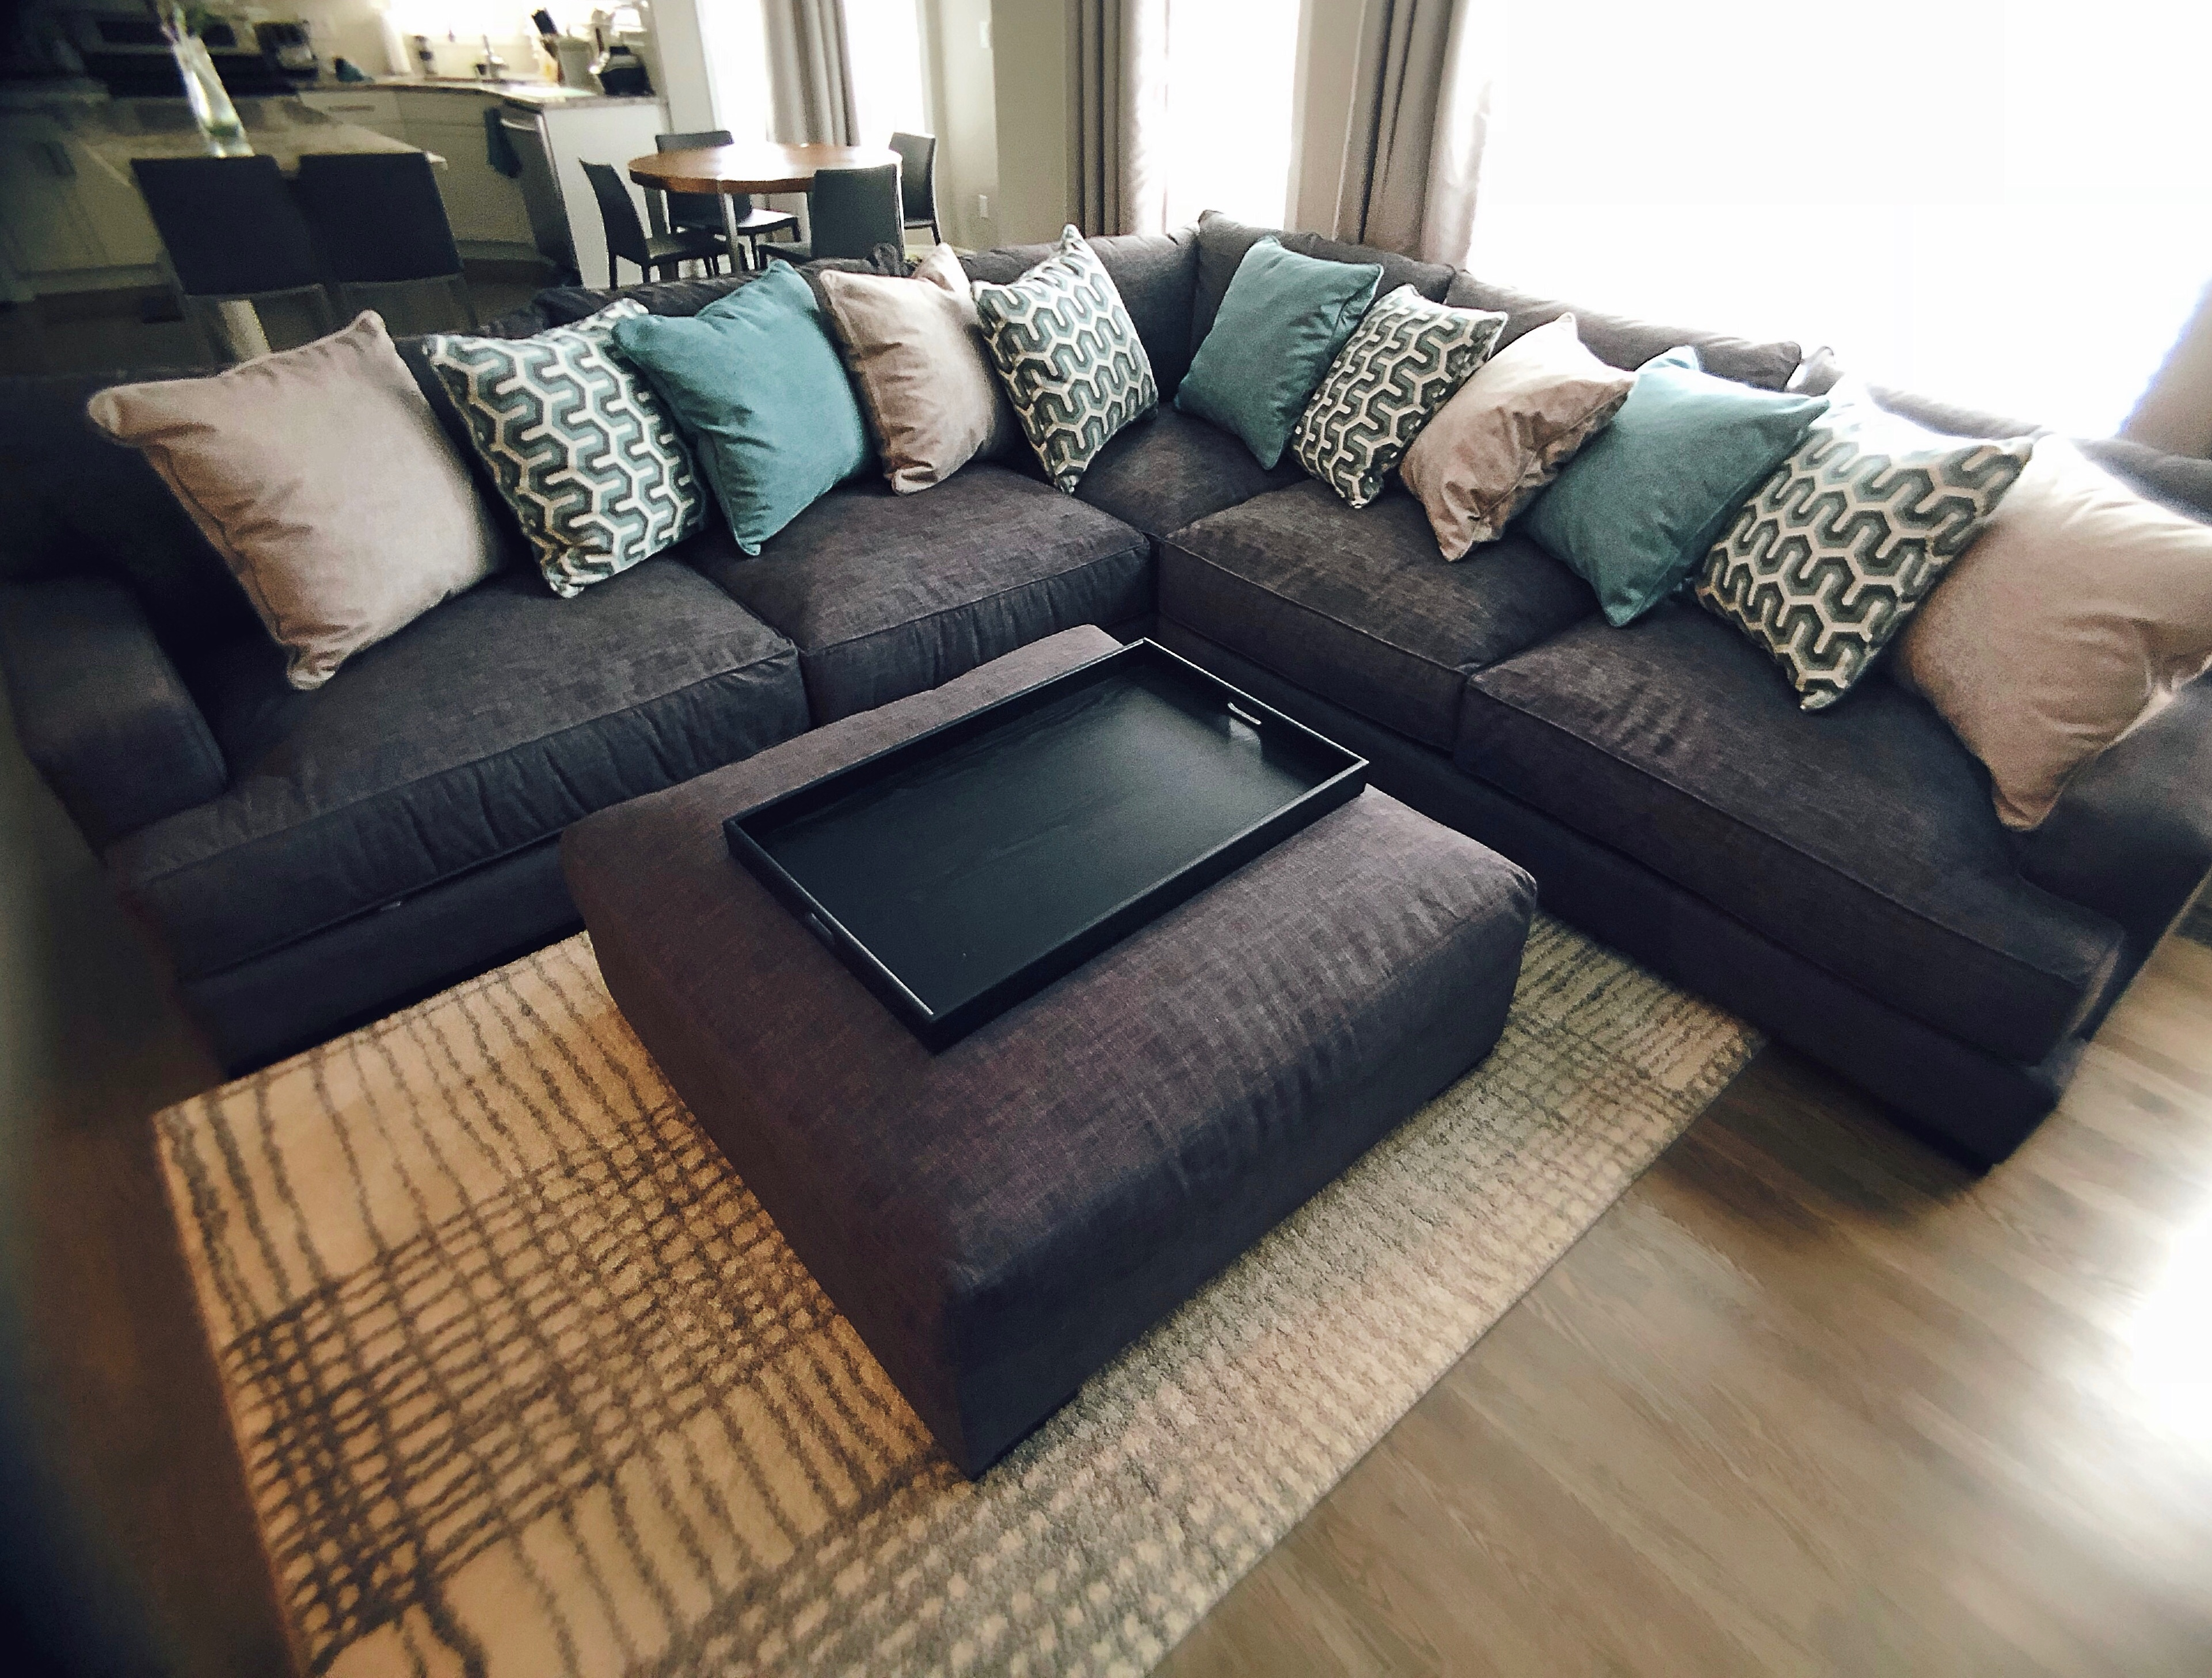 Our cozy family room makeover with Reside Furnishings